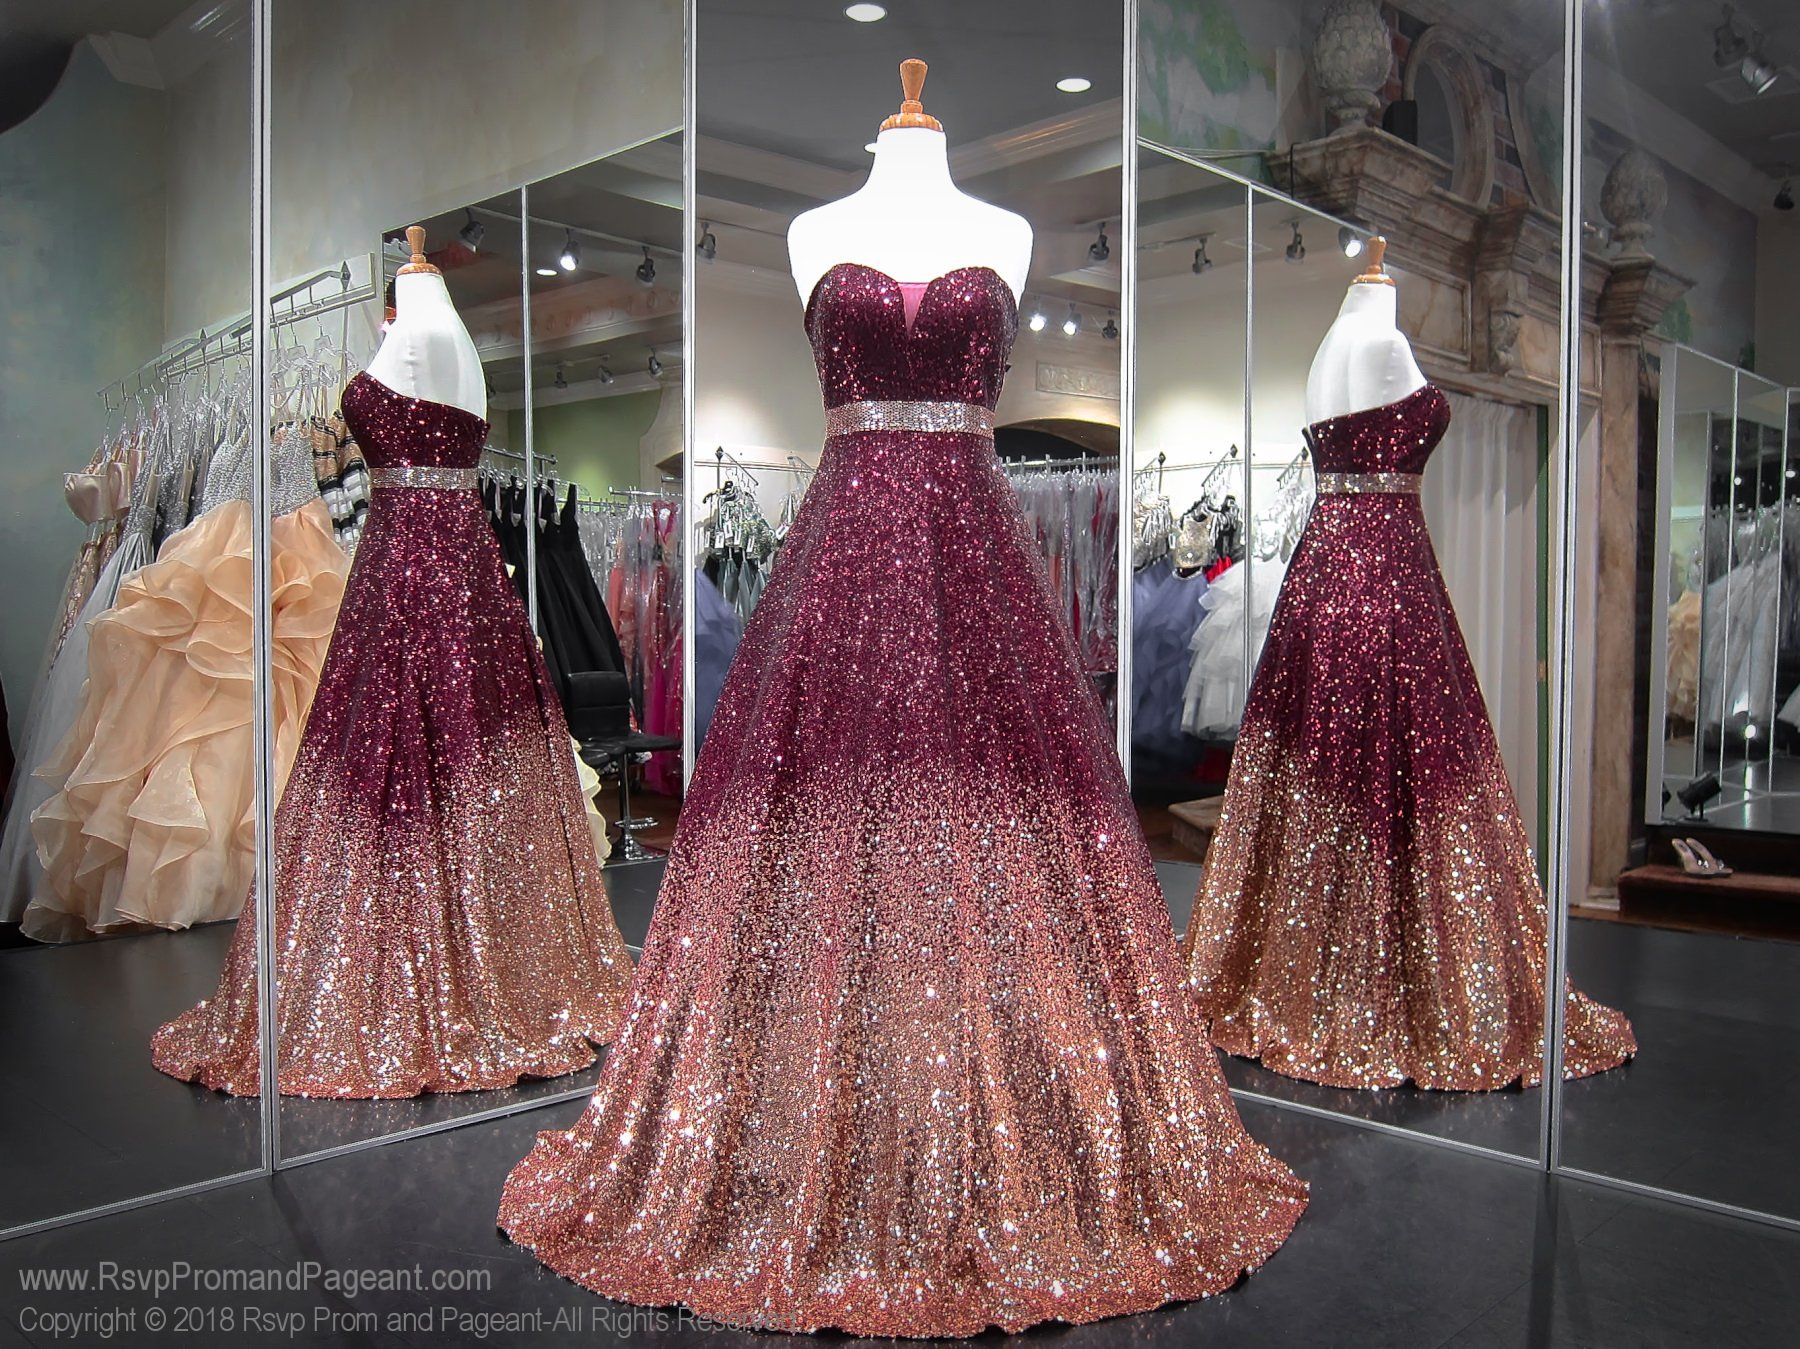 Burgundy Rose Gold Ombre Sweetheart Neckline Ball Gown Prom Dress ... c902cd869